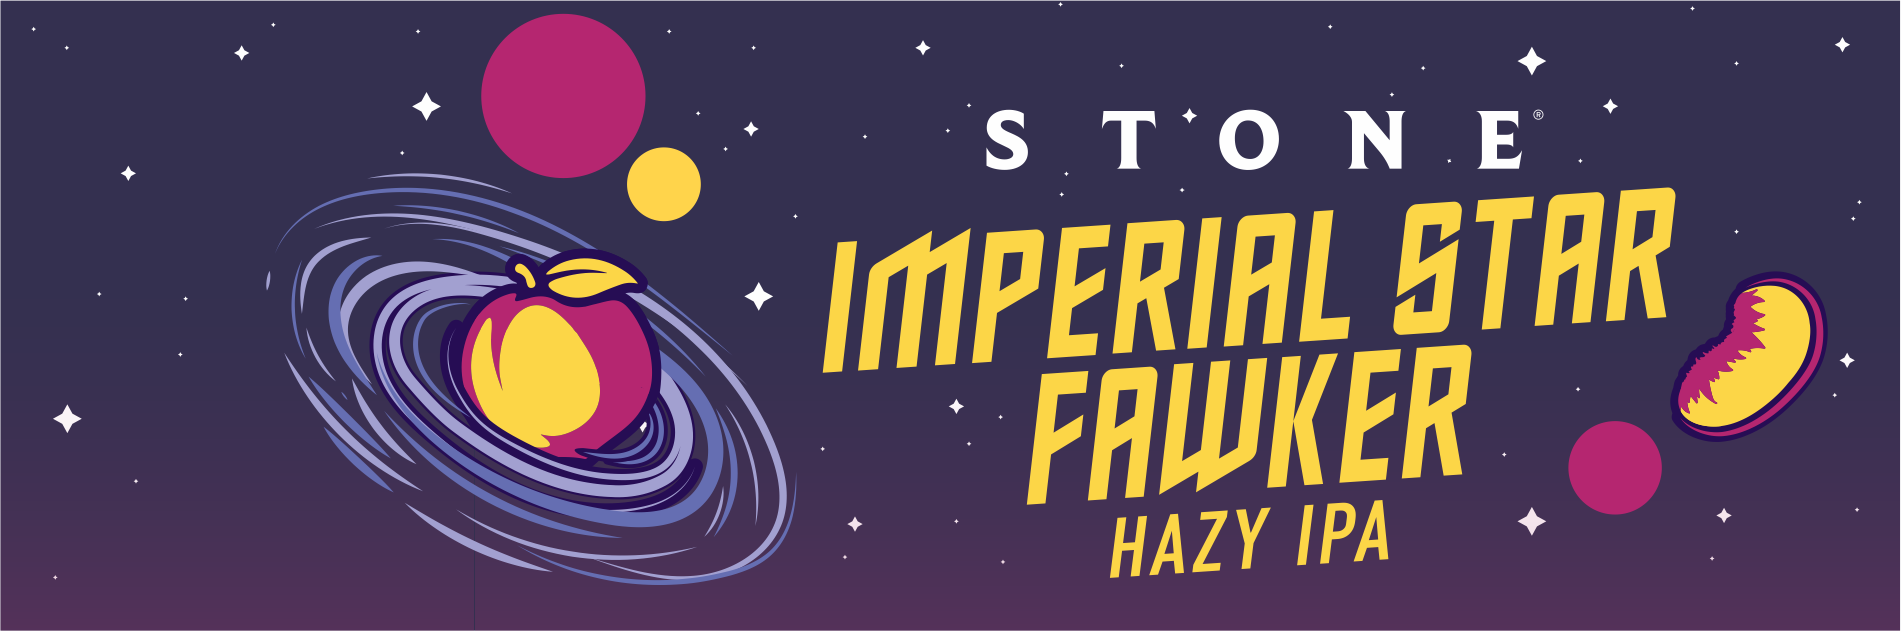 Stone Brewing Launches Stone Imperial Star Fawker IPA